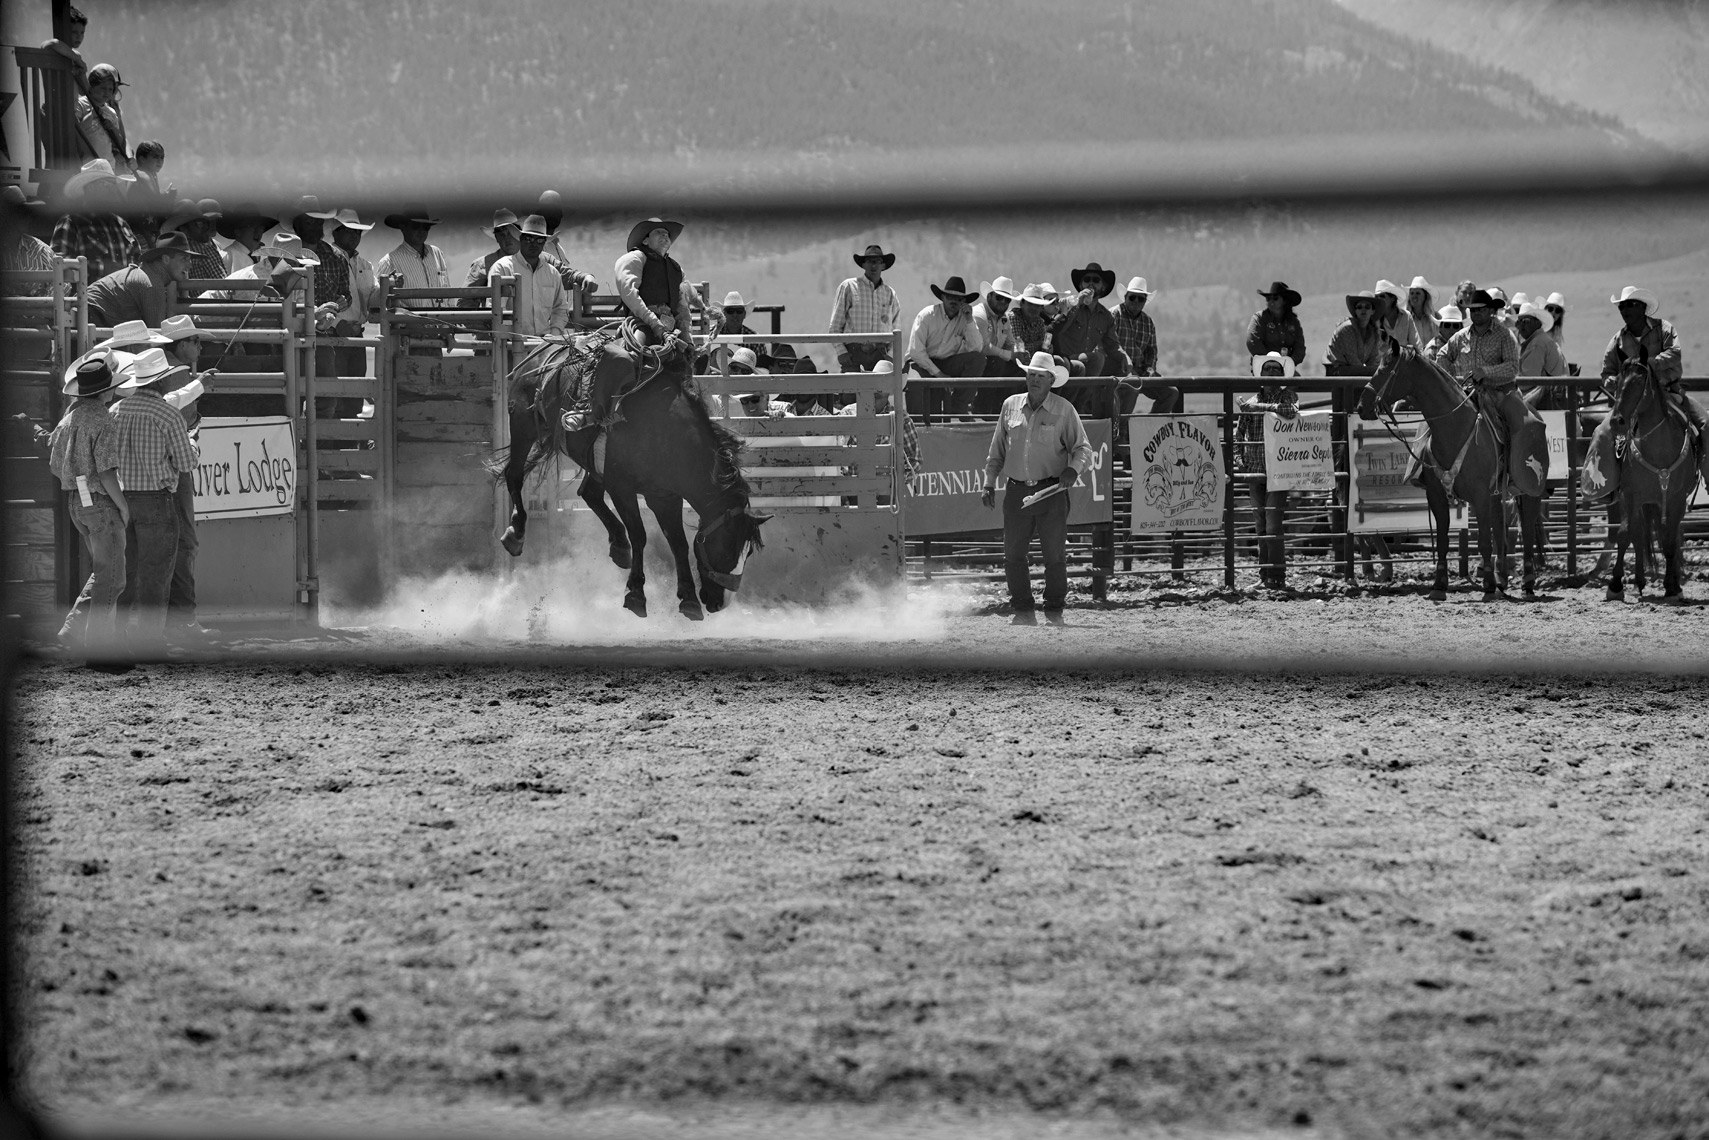 Roadtripping_BridgeportRodeo_DustyOutTheGate_BroncRider01_Action_Personal_Retouched_Web